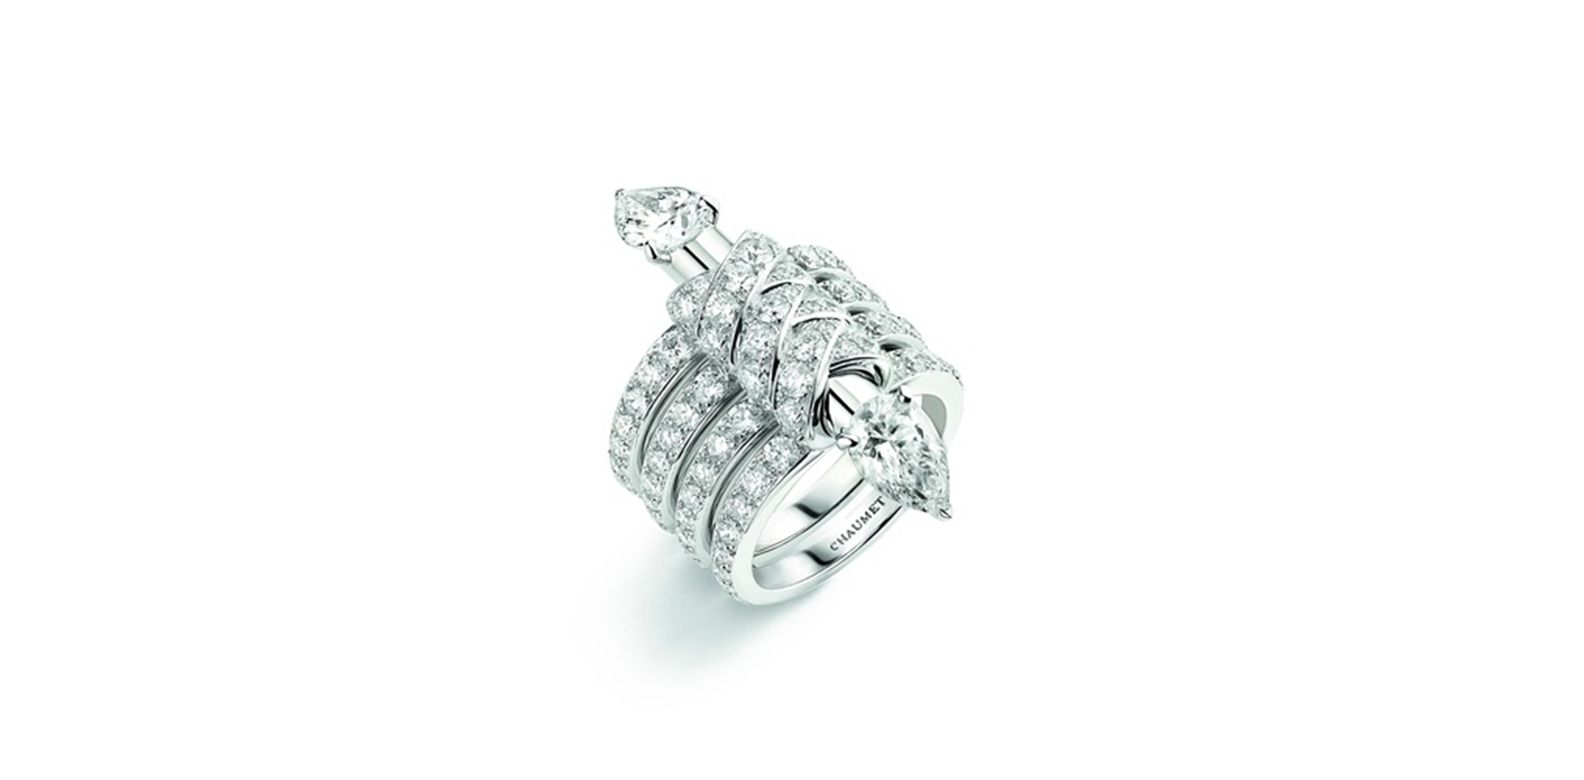 Ring in white gold, set with two pear-shaped D VVS1 diamonds of 1.09 and 1.06 carats, and brilliant-cut diamonds. Cascades Royales, Trésors d'Afrique, Chaumet